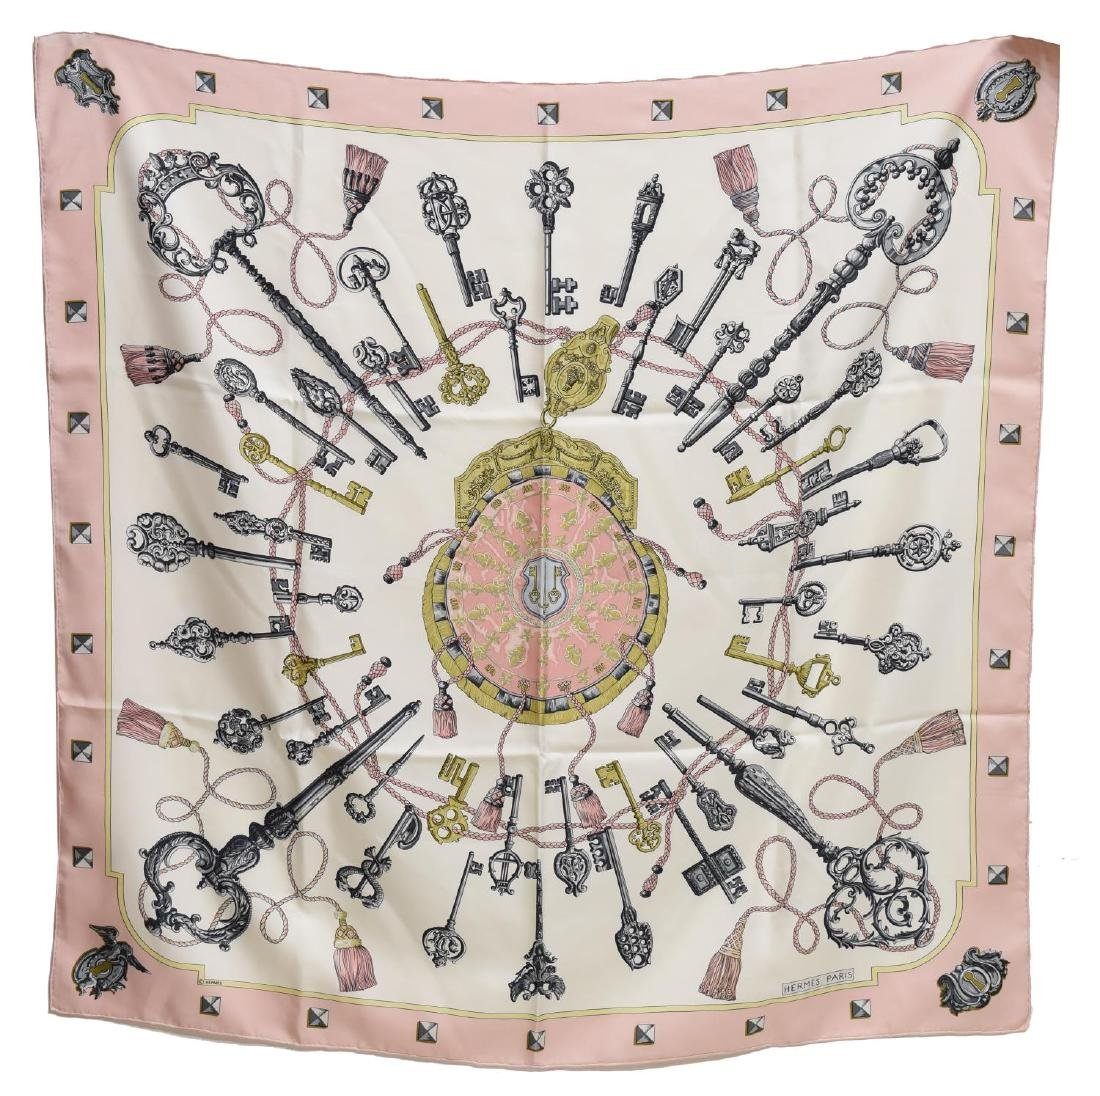 HERMES SILK TWILL SCARF, 'LES CLES' PATTERN